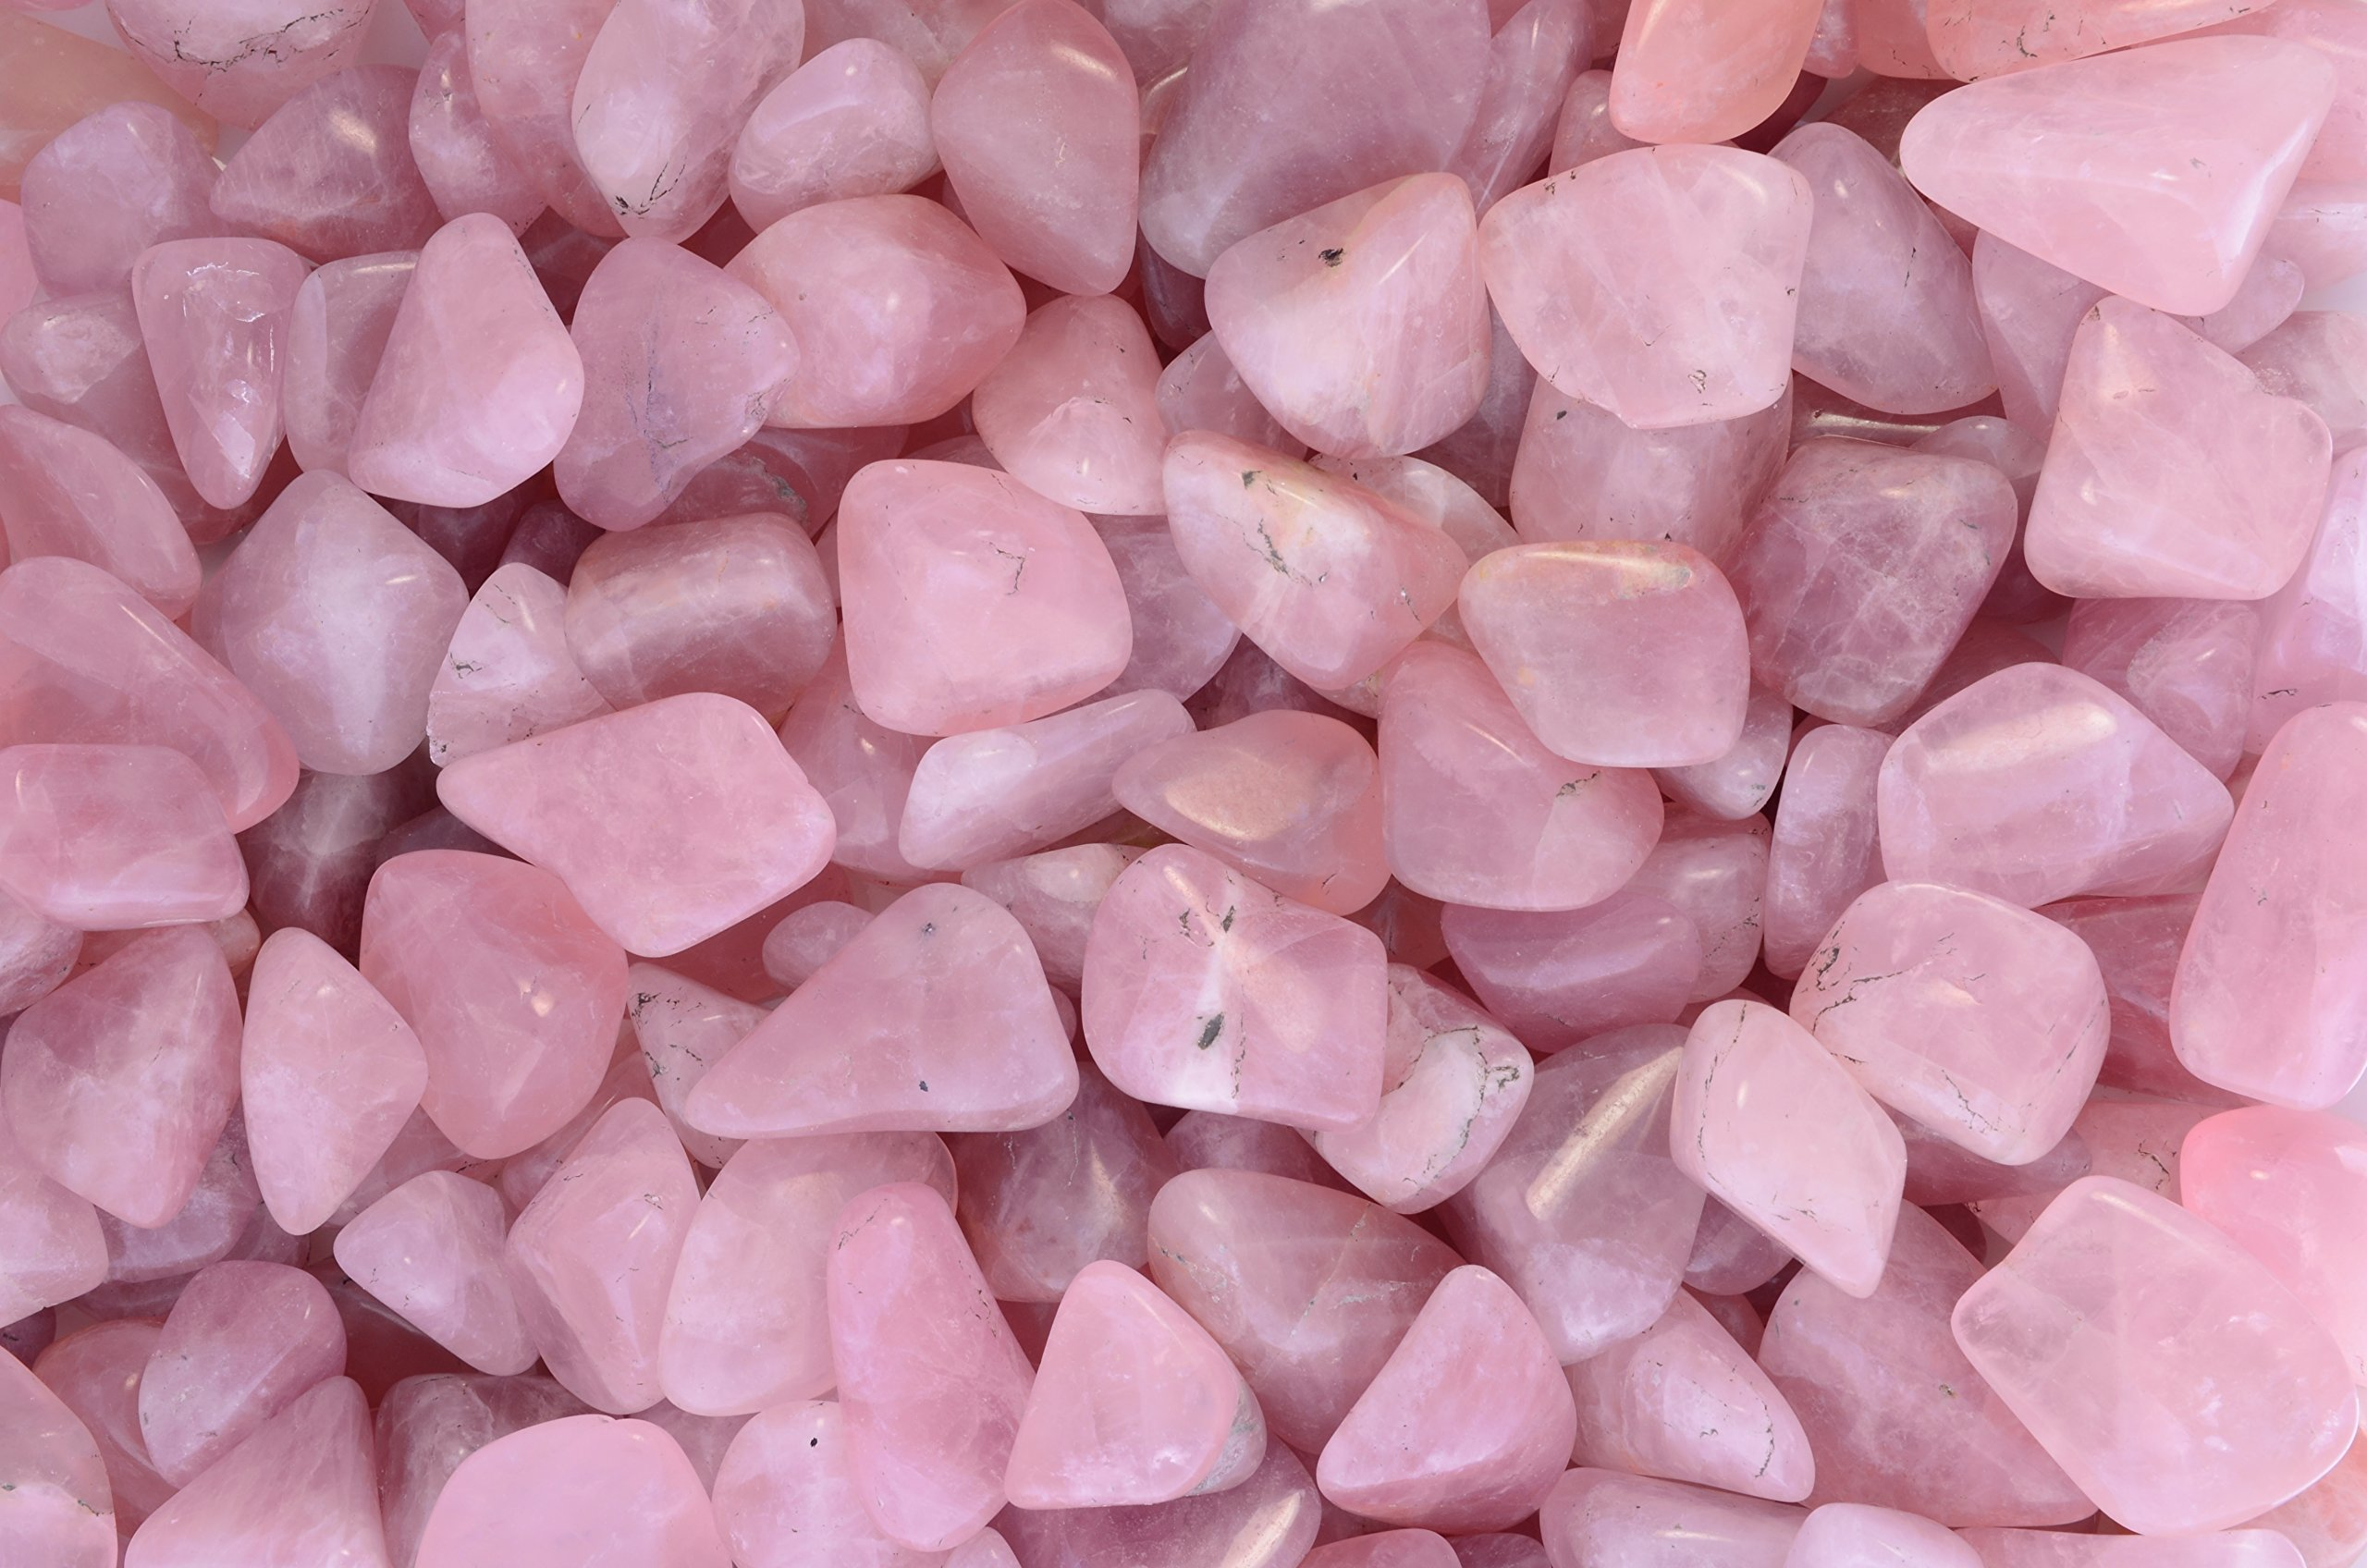 Fantasia Materials: 5 lbs Tumbled Rose Quartz Stones from Madagascar - Small - 0.75'' to 1.25'' Avg. - Premium Polished Rocks for Art, Crafts, Decoration, Landscaping, Fountains, Reiki and More!